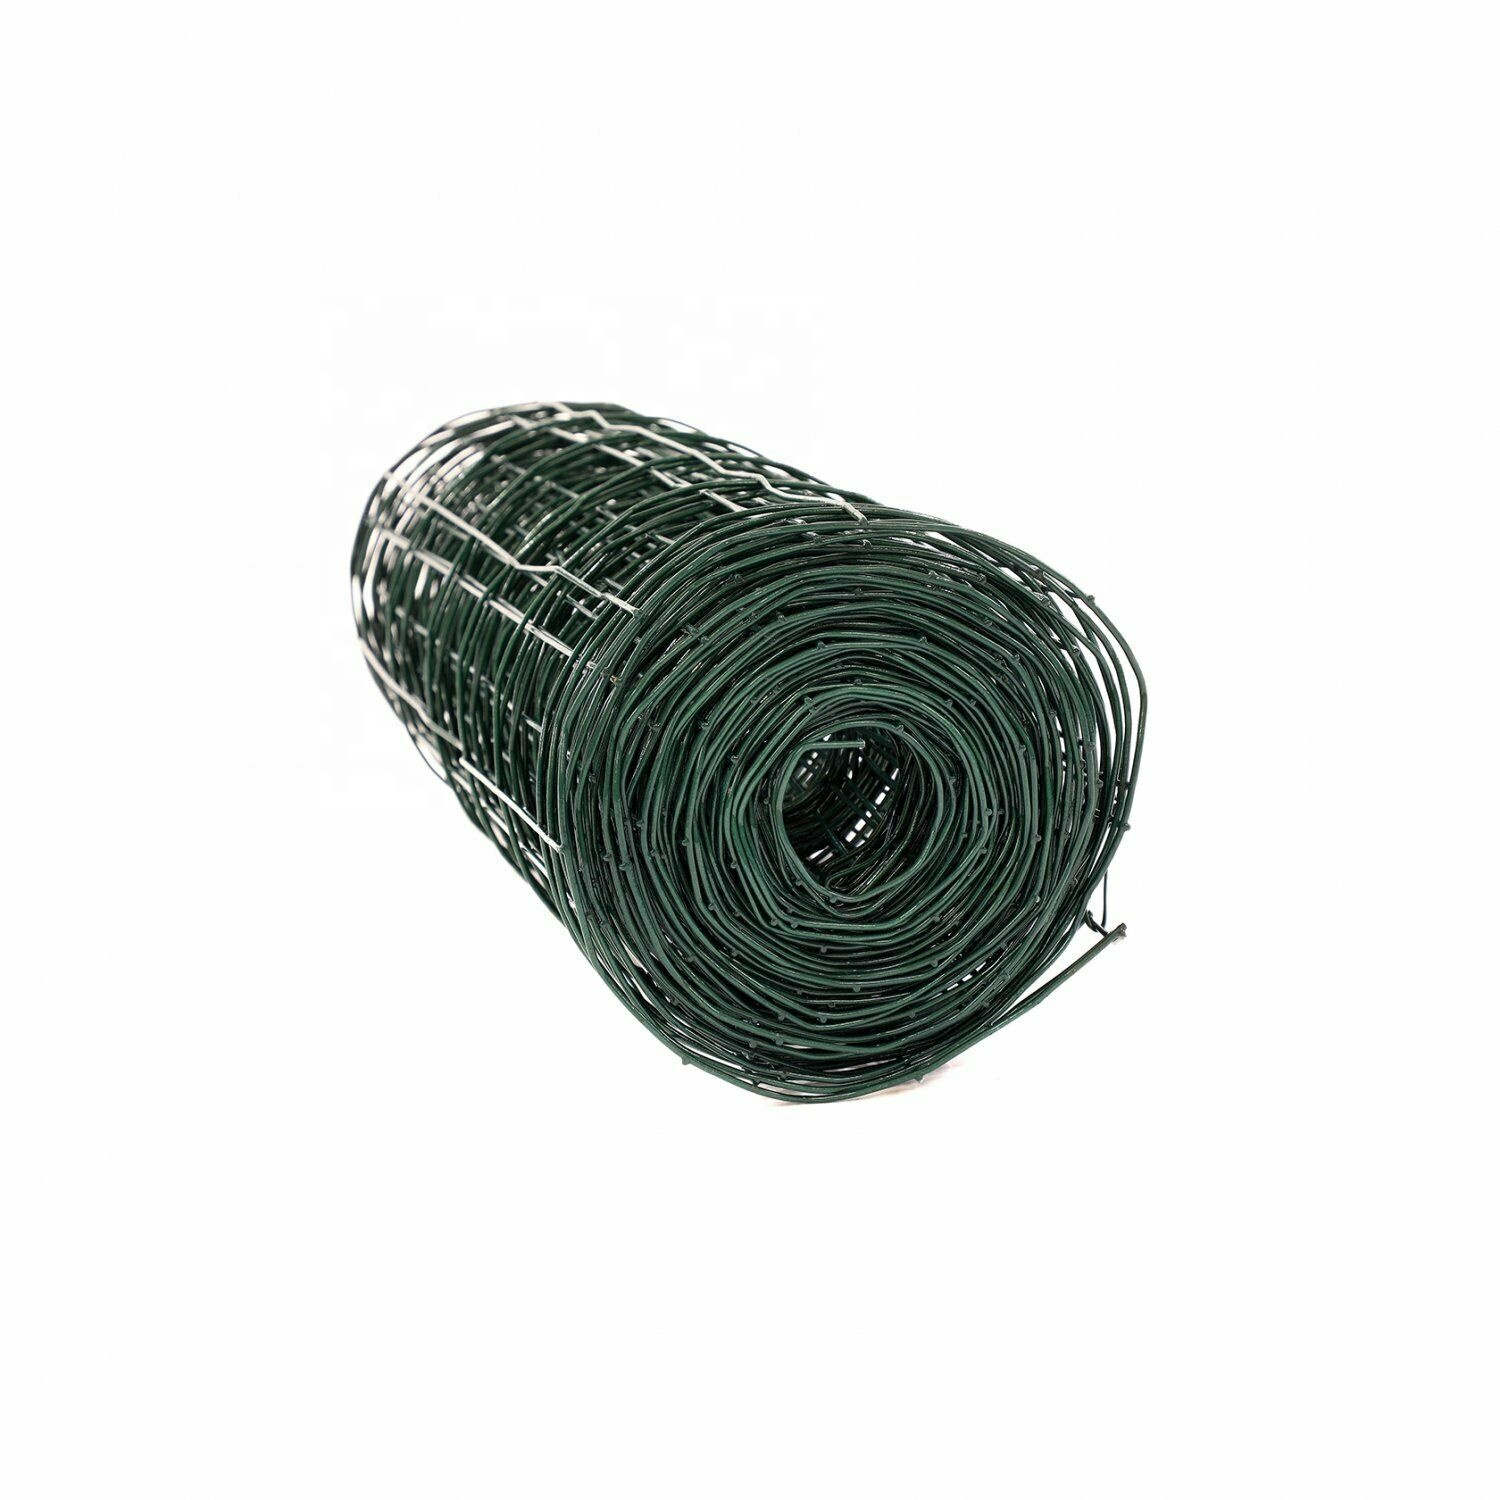 Green PVC Coated Galvanised Steel Wire Mesh Fencing Garden Euro Fence